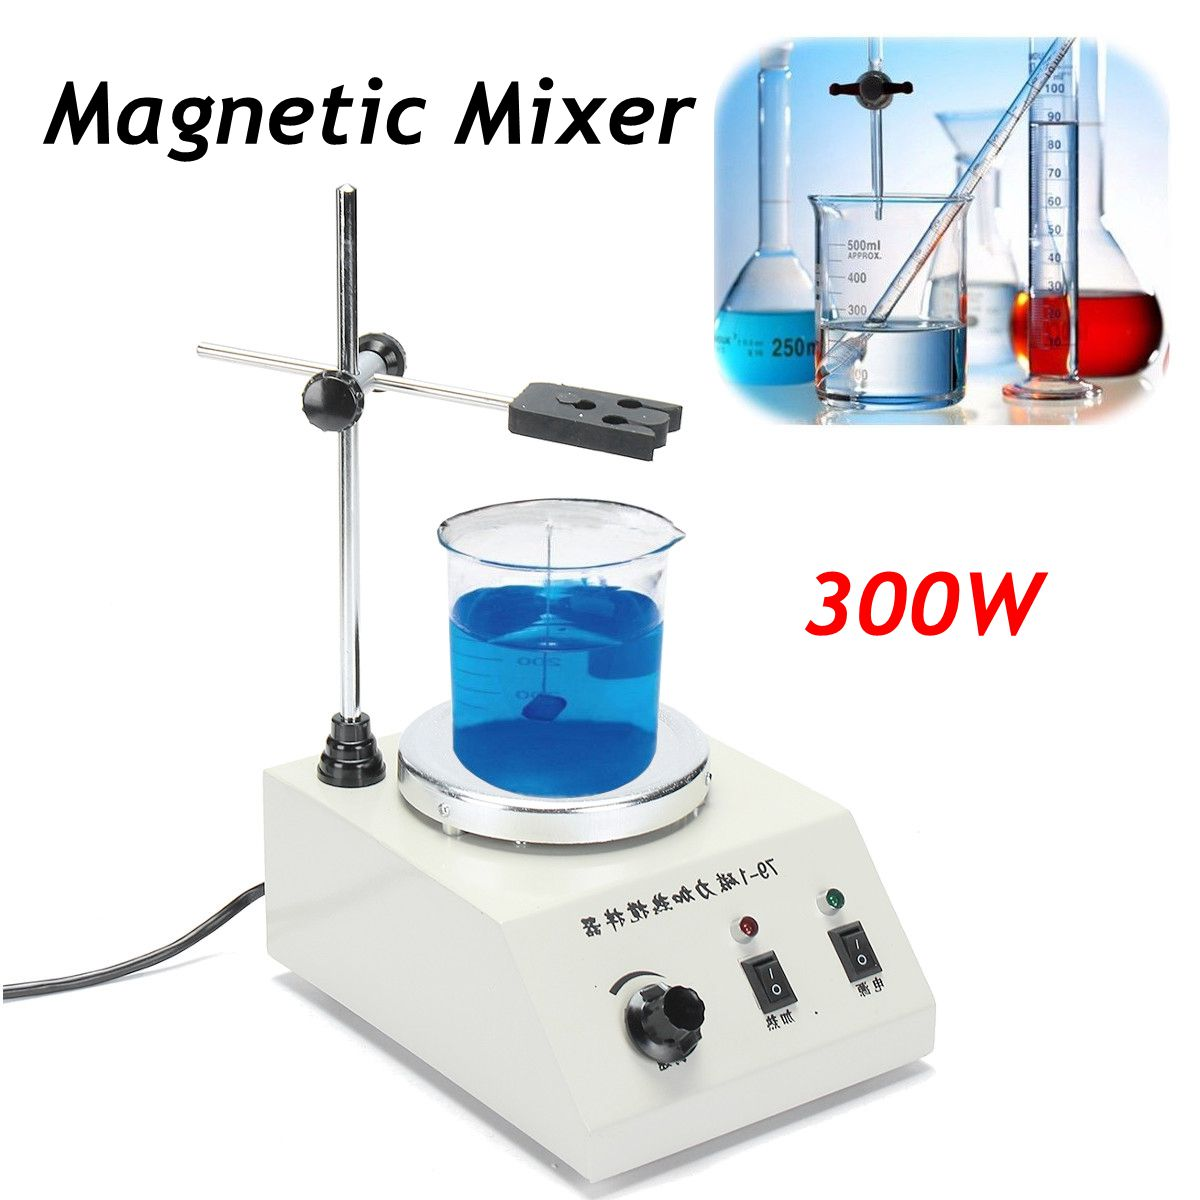 220v / 50Hz 300W 79-1 Magnetism Stirrer Heating Mixer Hot Plate Magnetic Machine free shipping 7 15 mm ptfe magnetic stirrer mixer stir bar with pivot ring white color